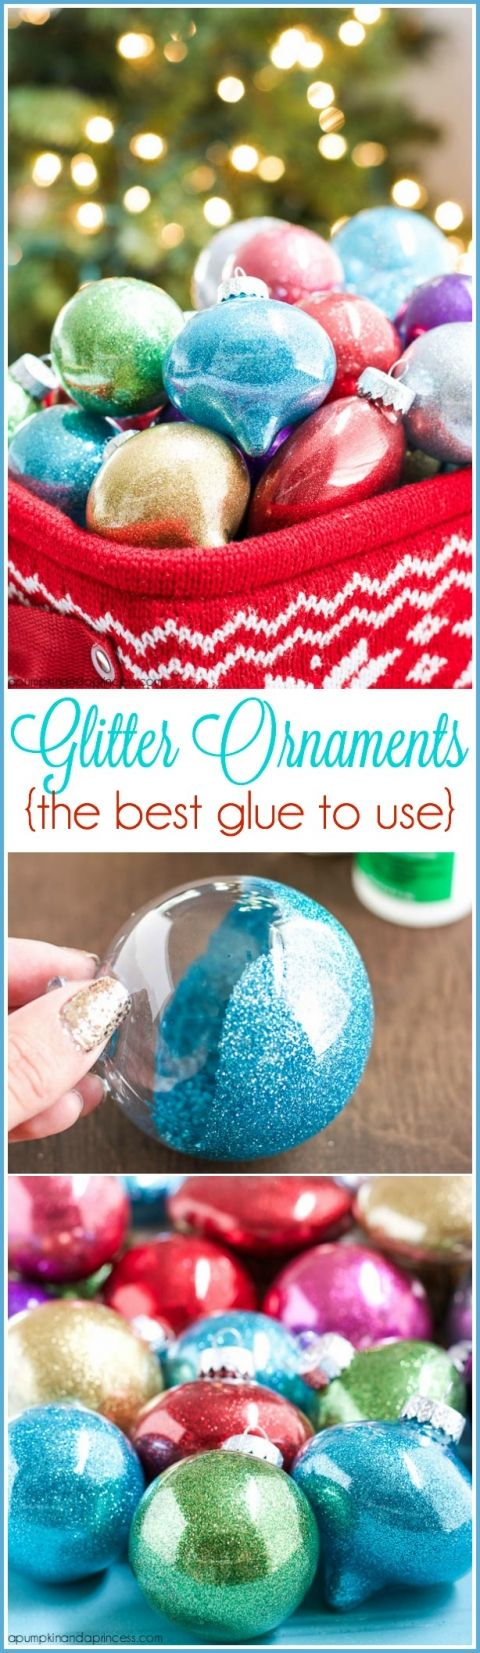 DIY Glitter Ornaments {best glue to use} Xmas crafts